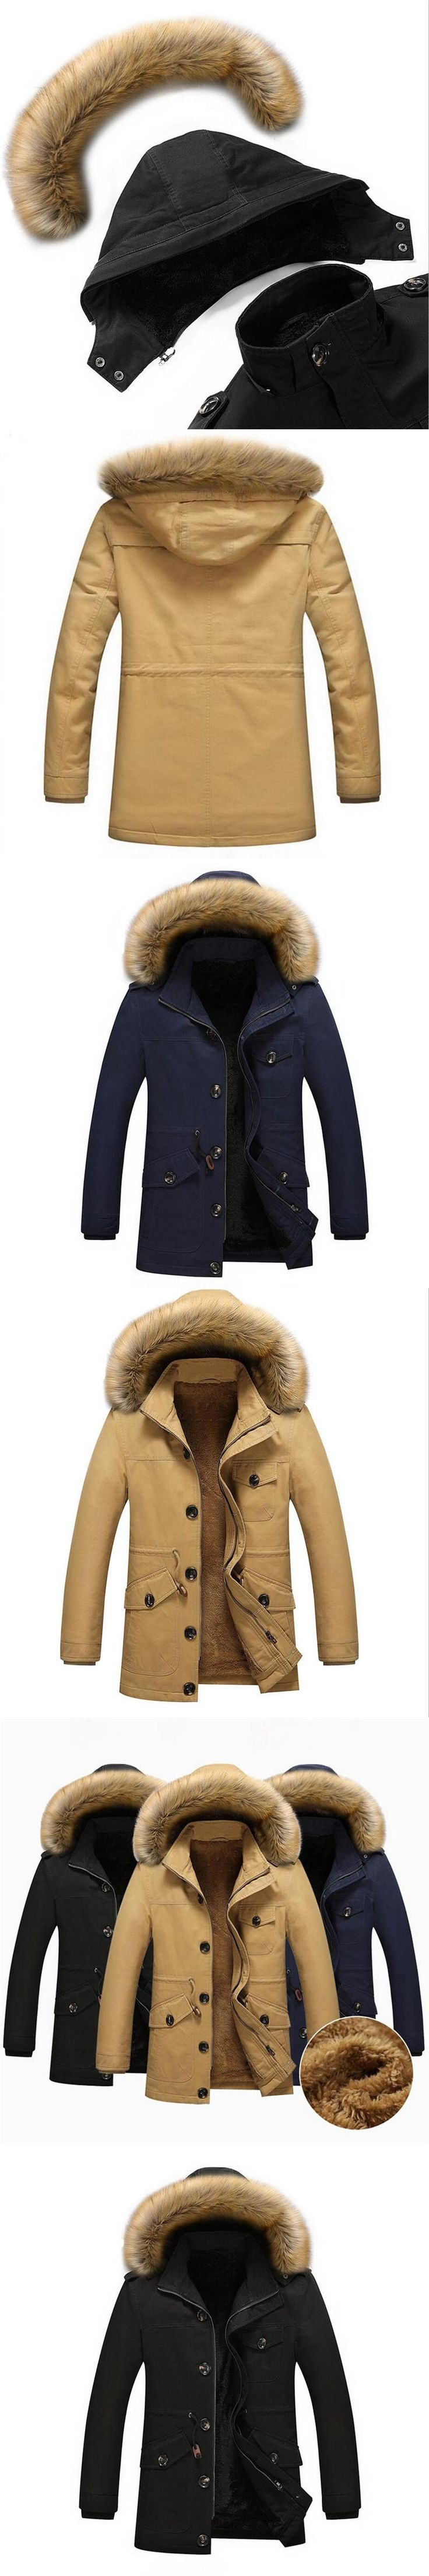 New Winter Warm Jacket Men Outwear Casual Thicken Fur Collar Cotton-Padded Parka Men Hooded Coat Male Parkas Hombre Invierno 5XL